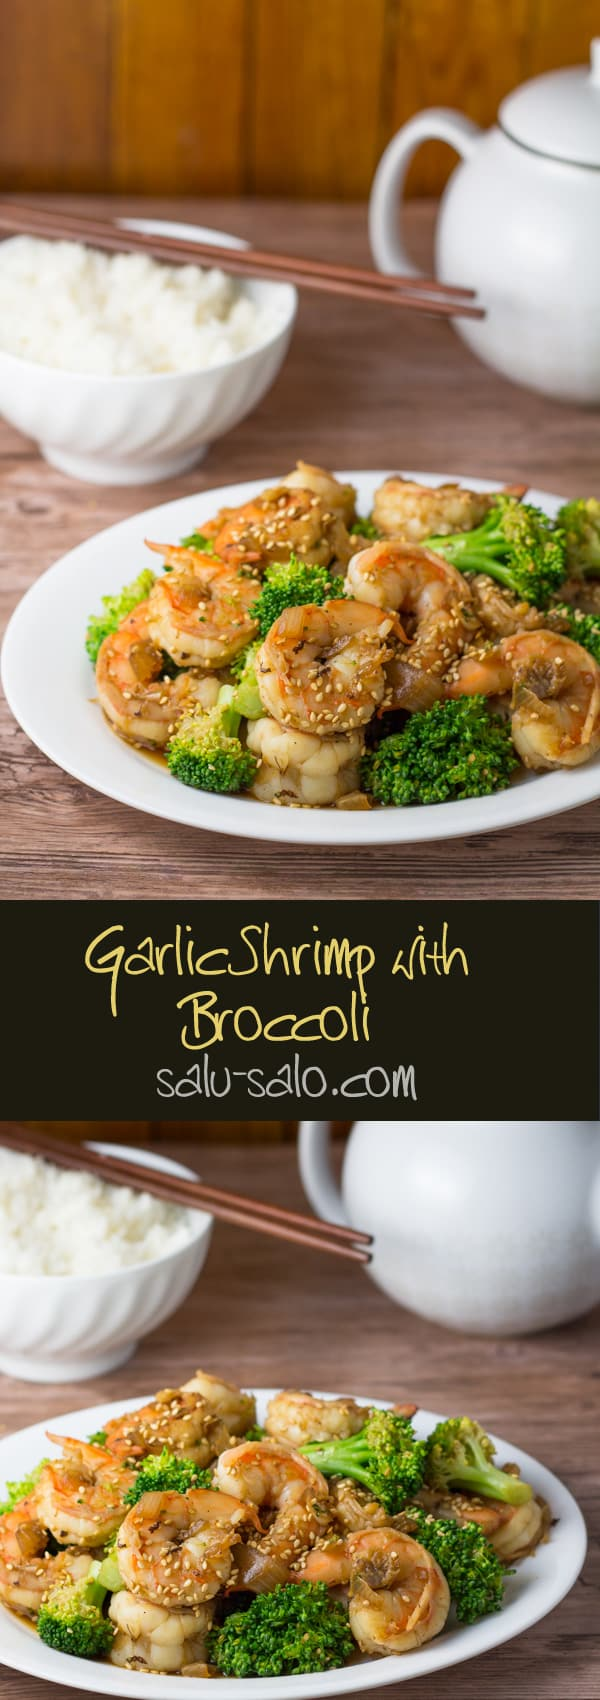 Garlic Shrimp with Broccoli